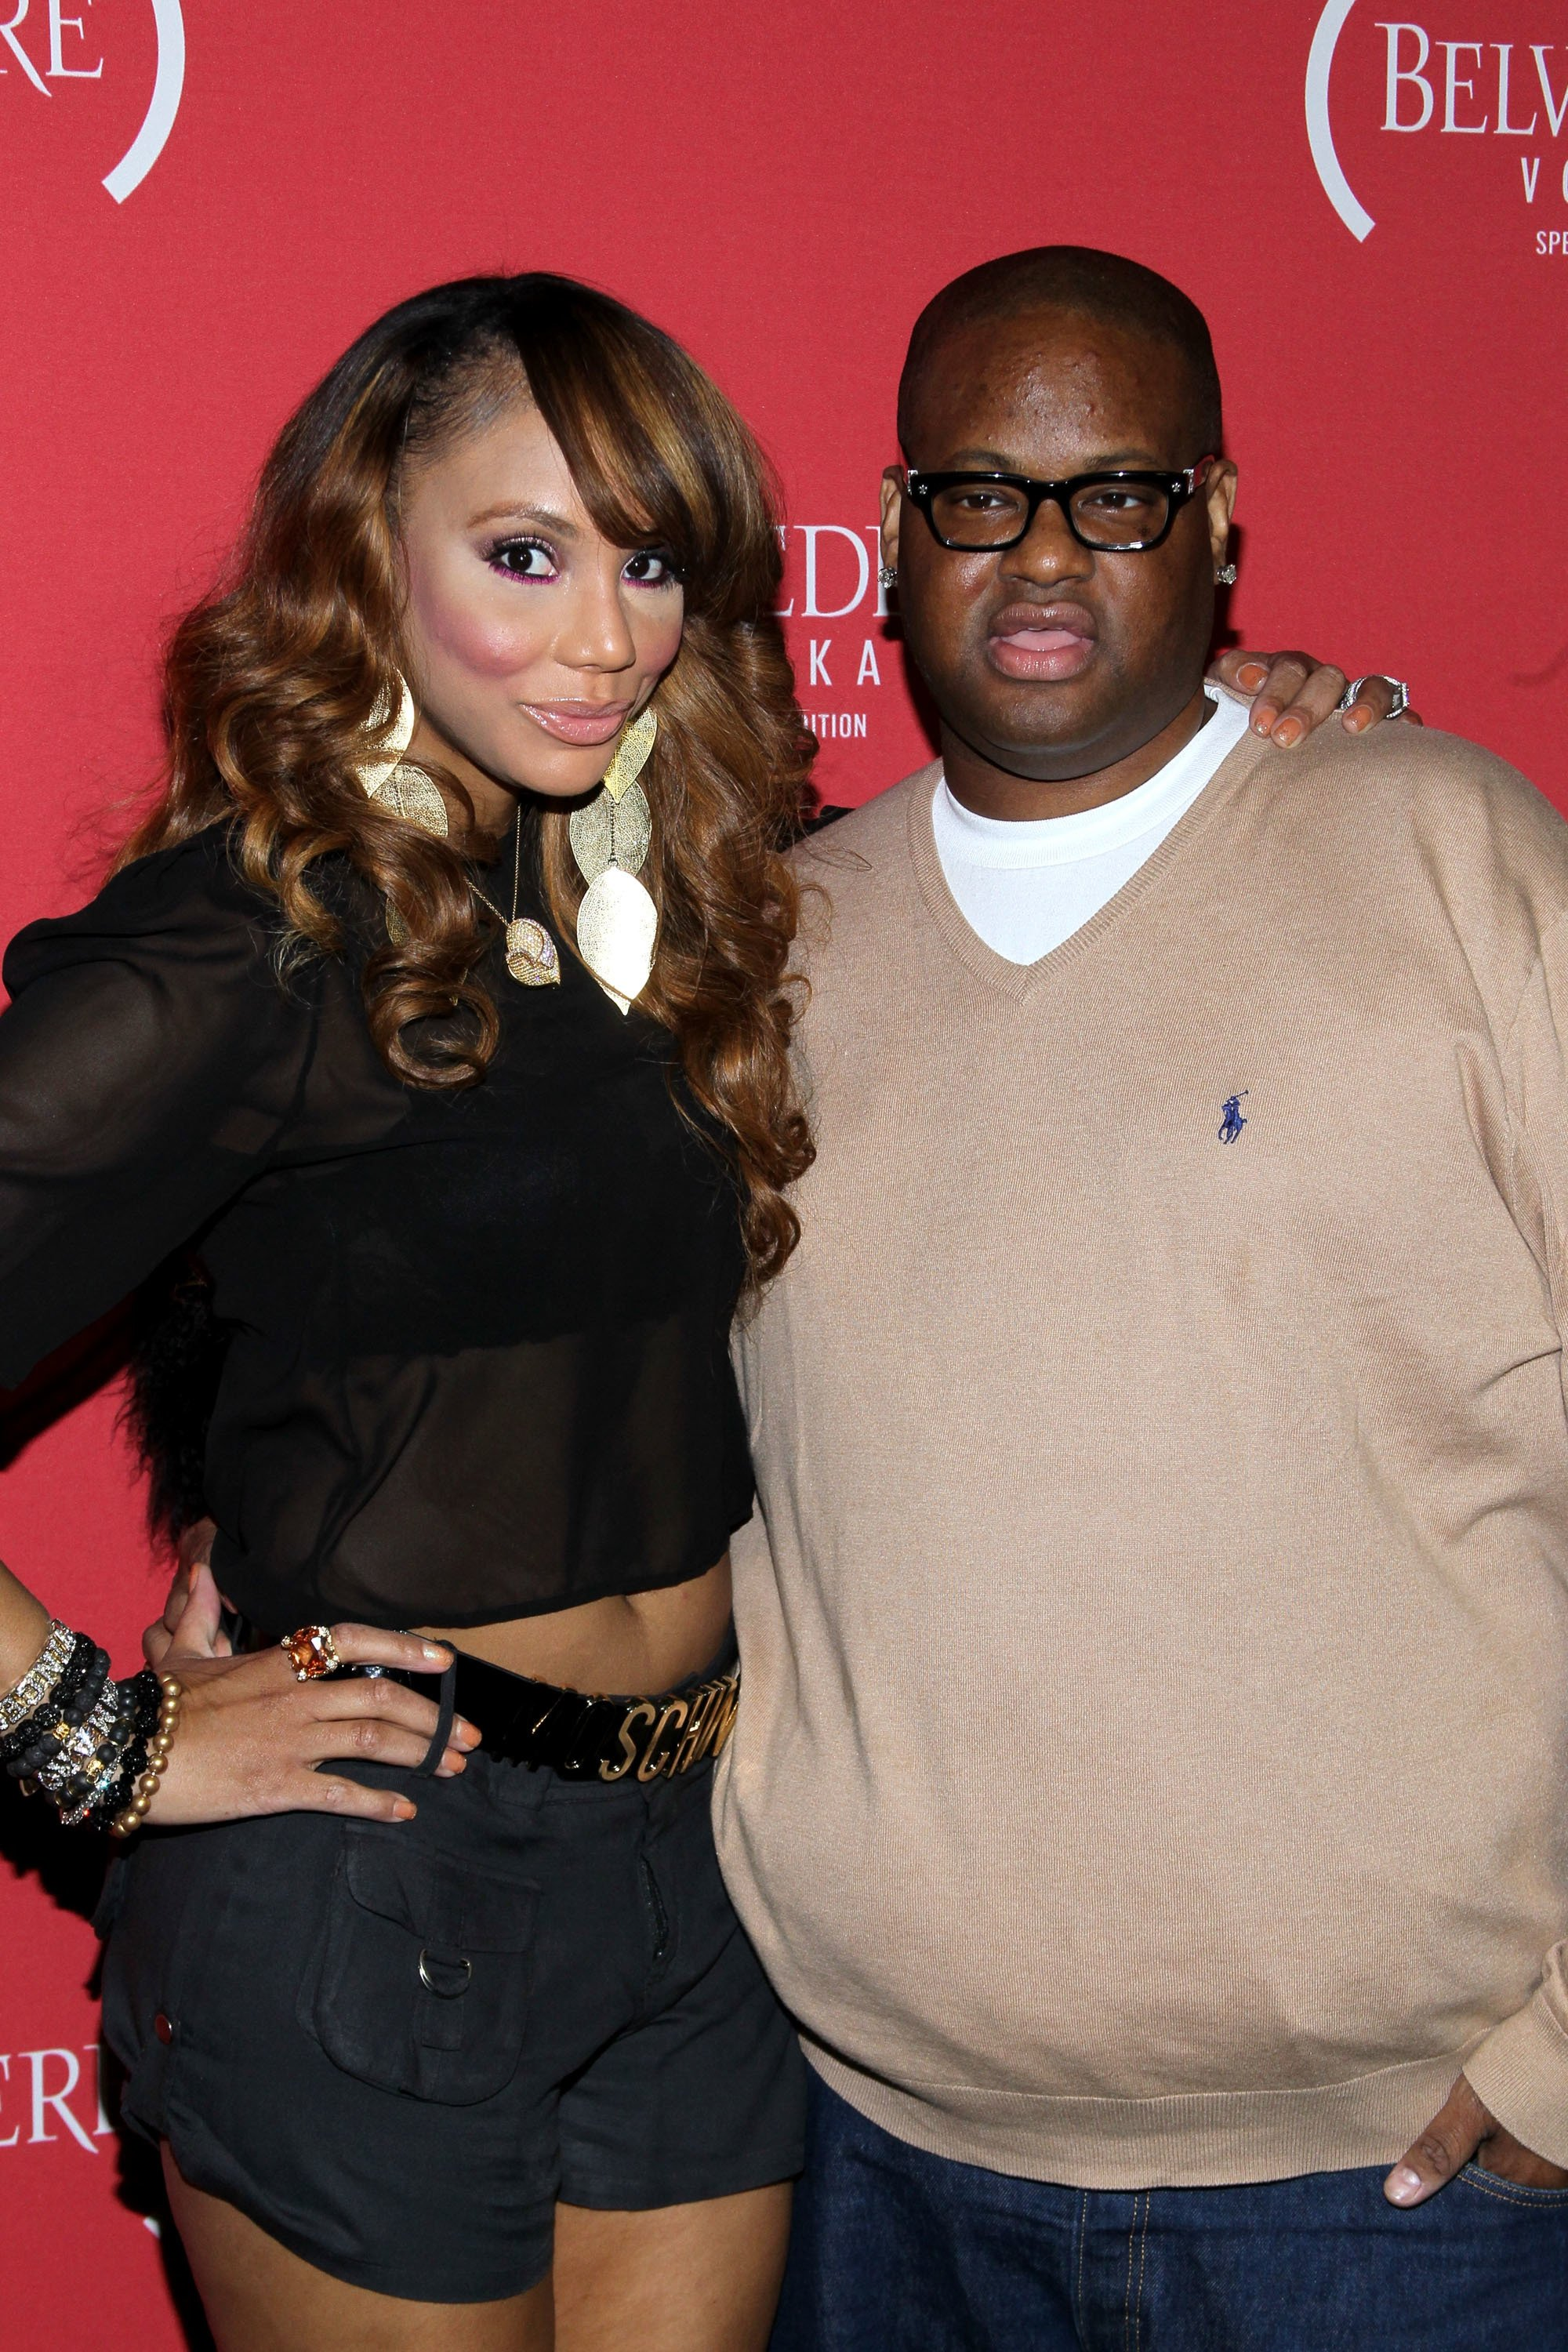 Tamar Braxton and Vincent Herbert at the  RED Pre-Grammys Party with Mary J Blige held at Avalon on February 9, 2012 in Hollywood, California | Photo: Getty Images